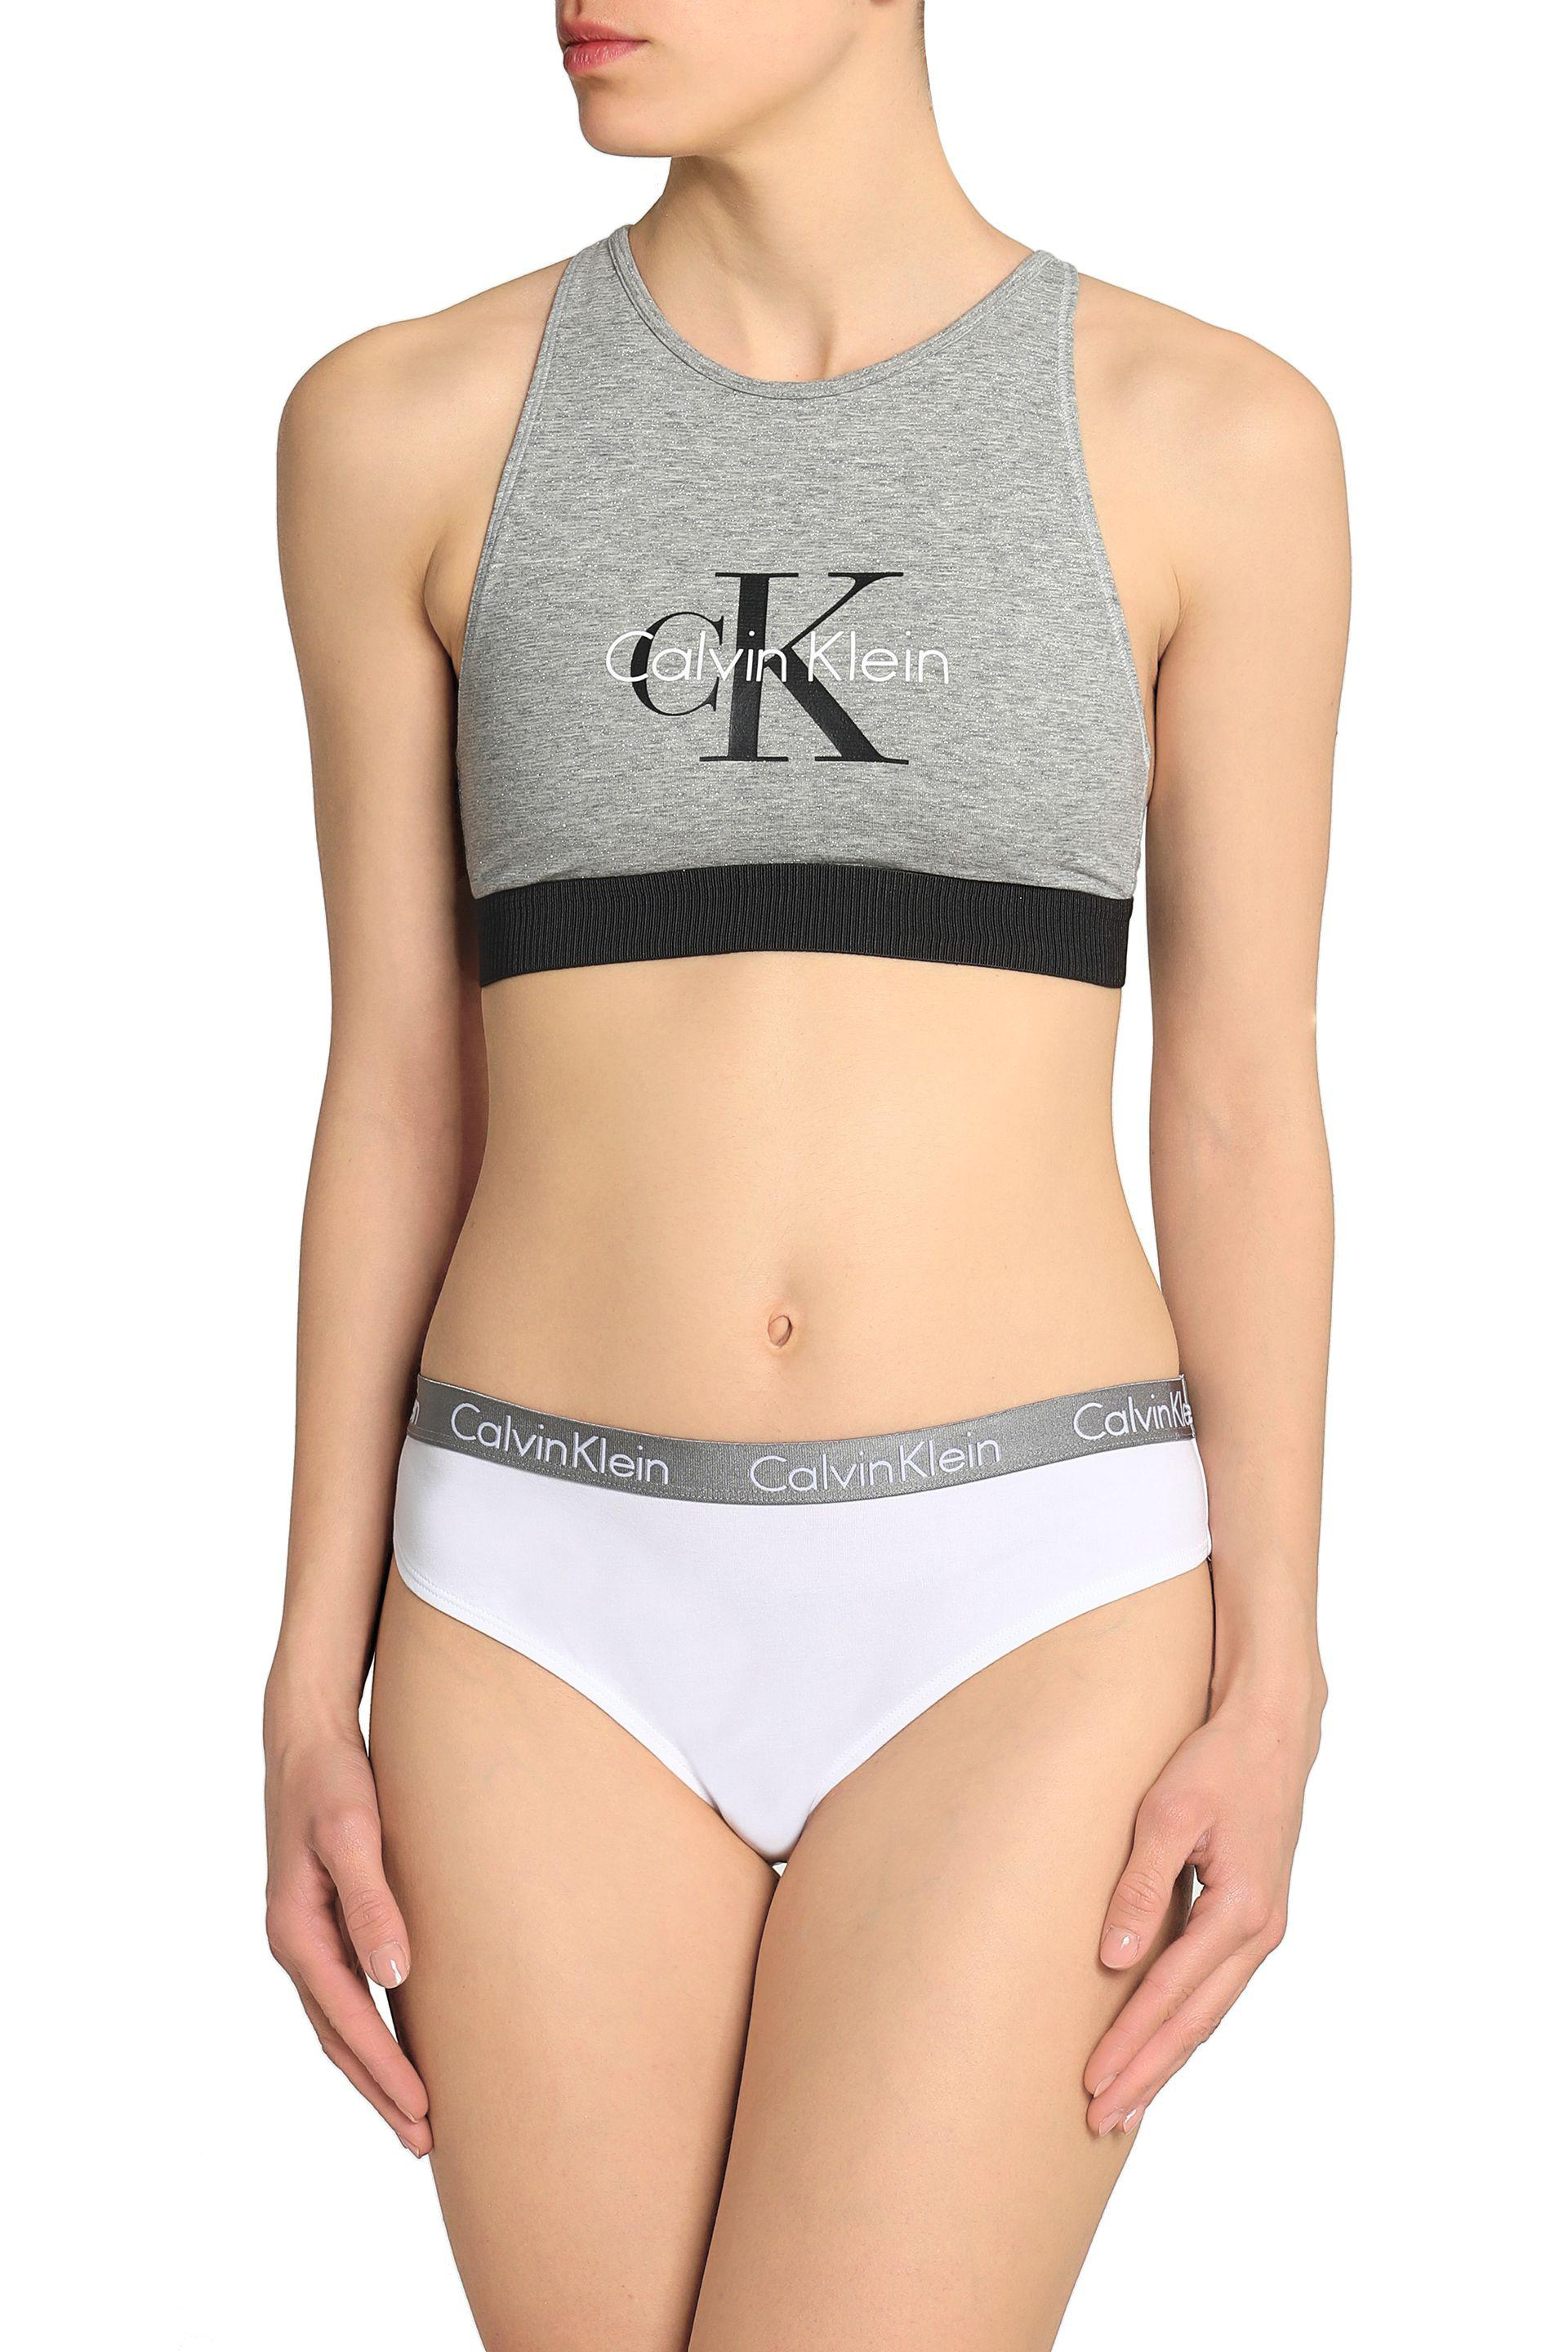 Calvin Klein - Gray Printed Stretch-cotton Sports Bra - Lyst. View  fullscreen fffa6b031